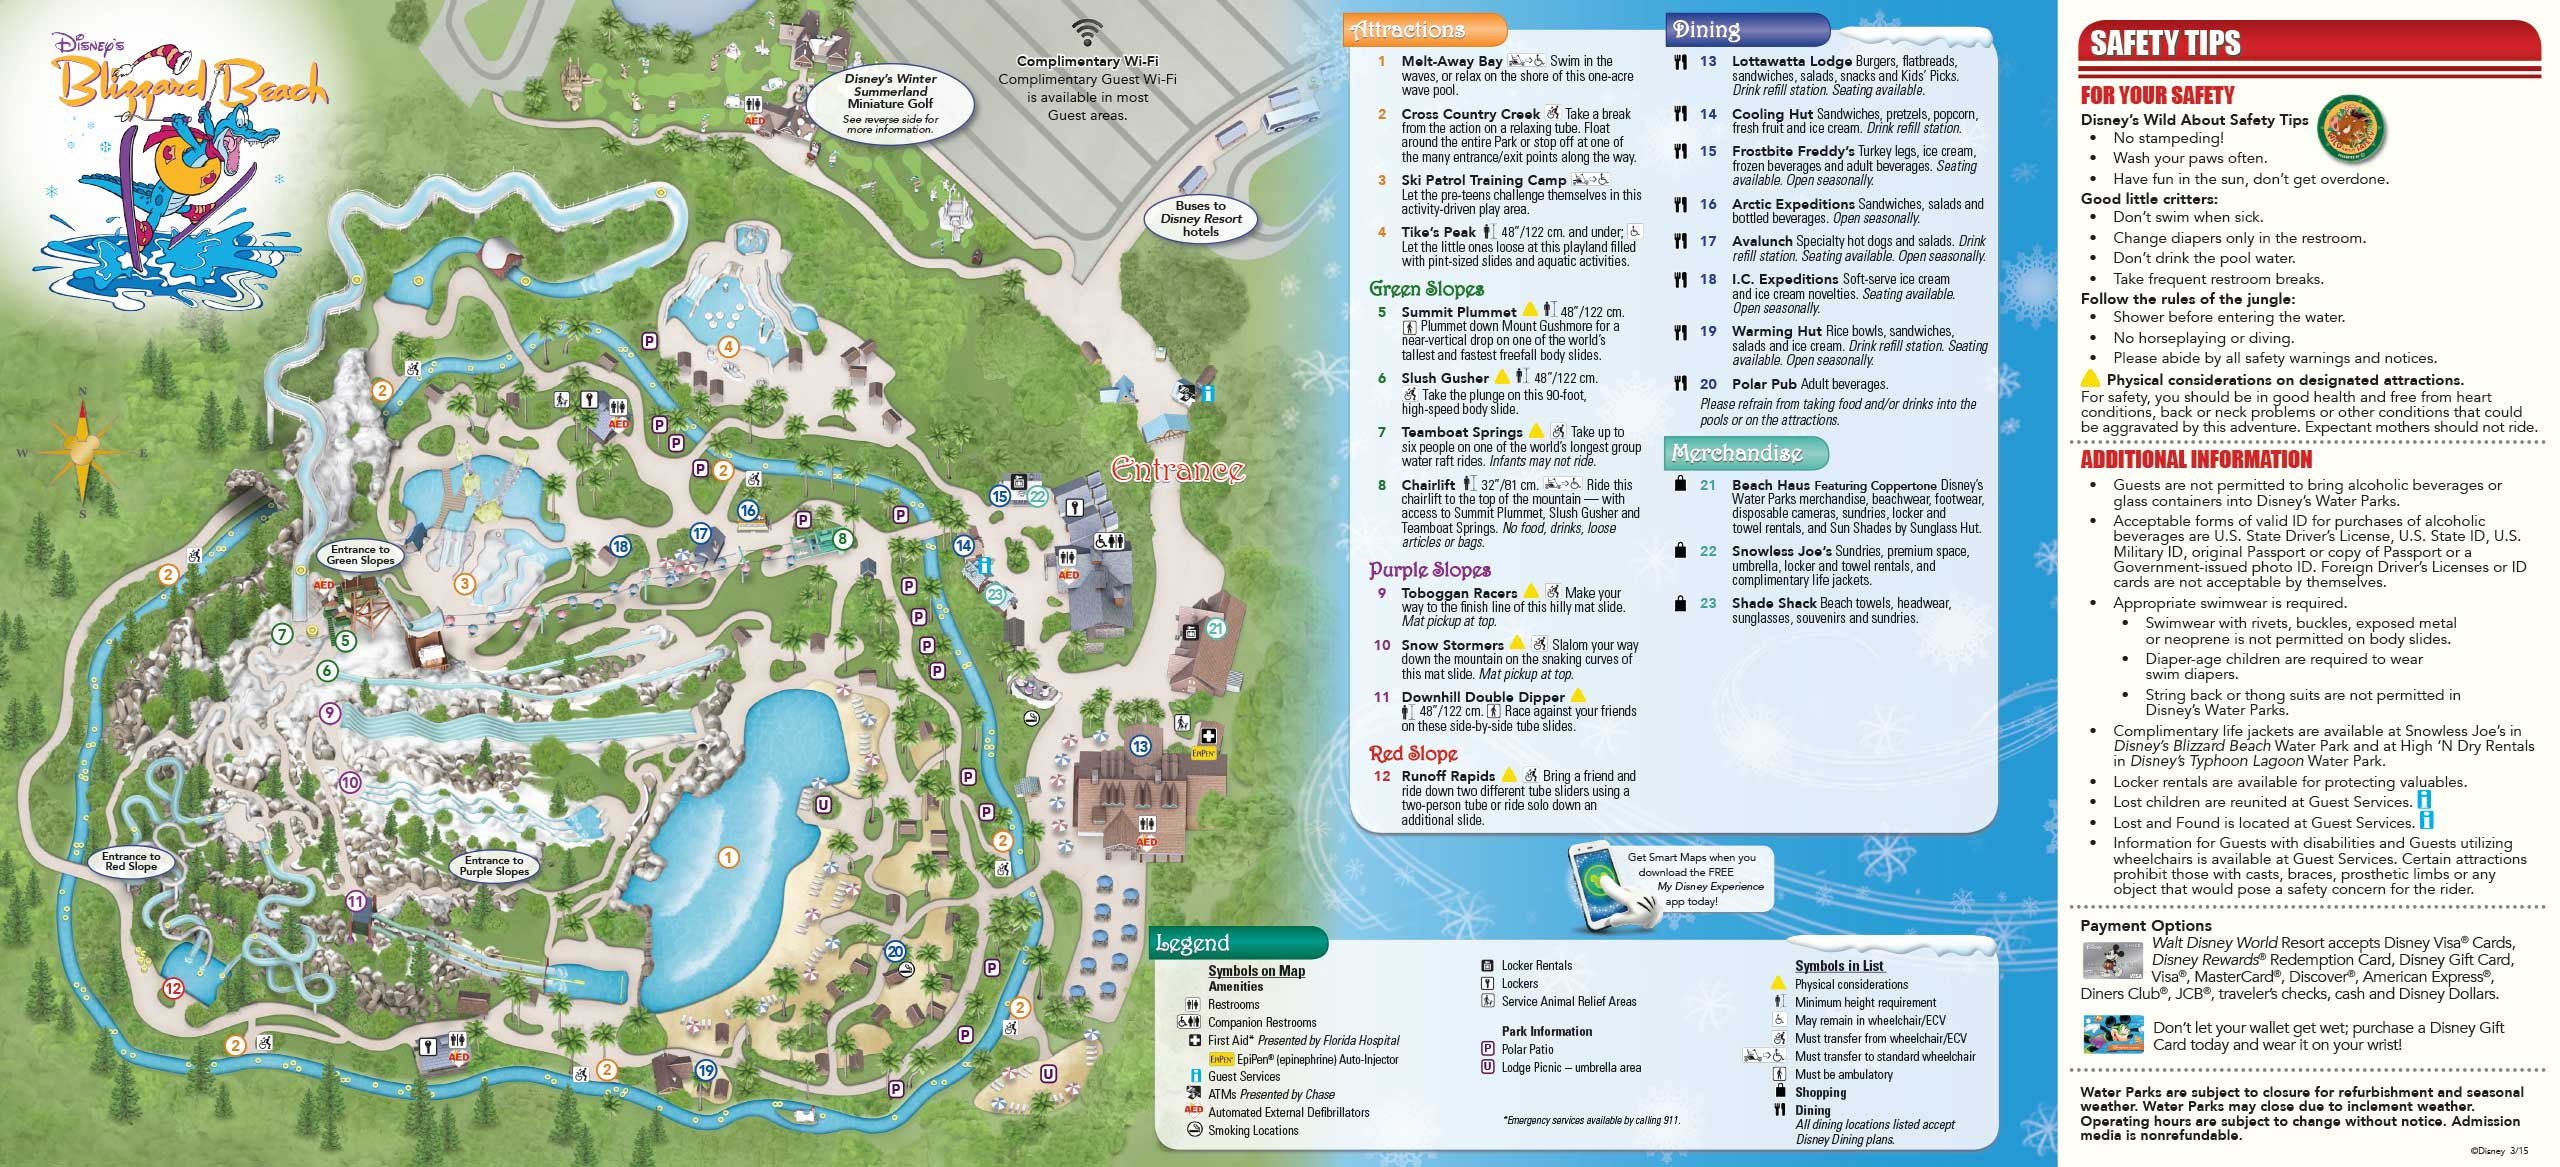 May 2015 Walt Disney World Resort Park Maps   Photo 10 of 14